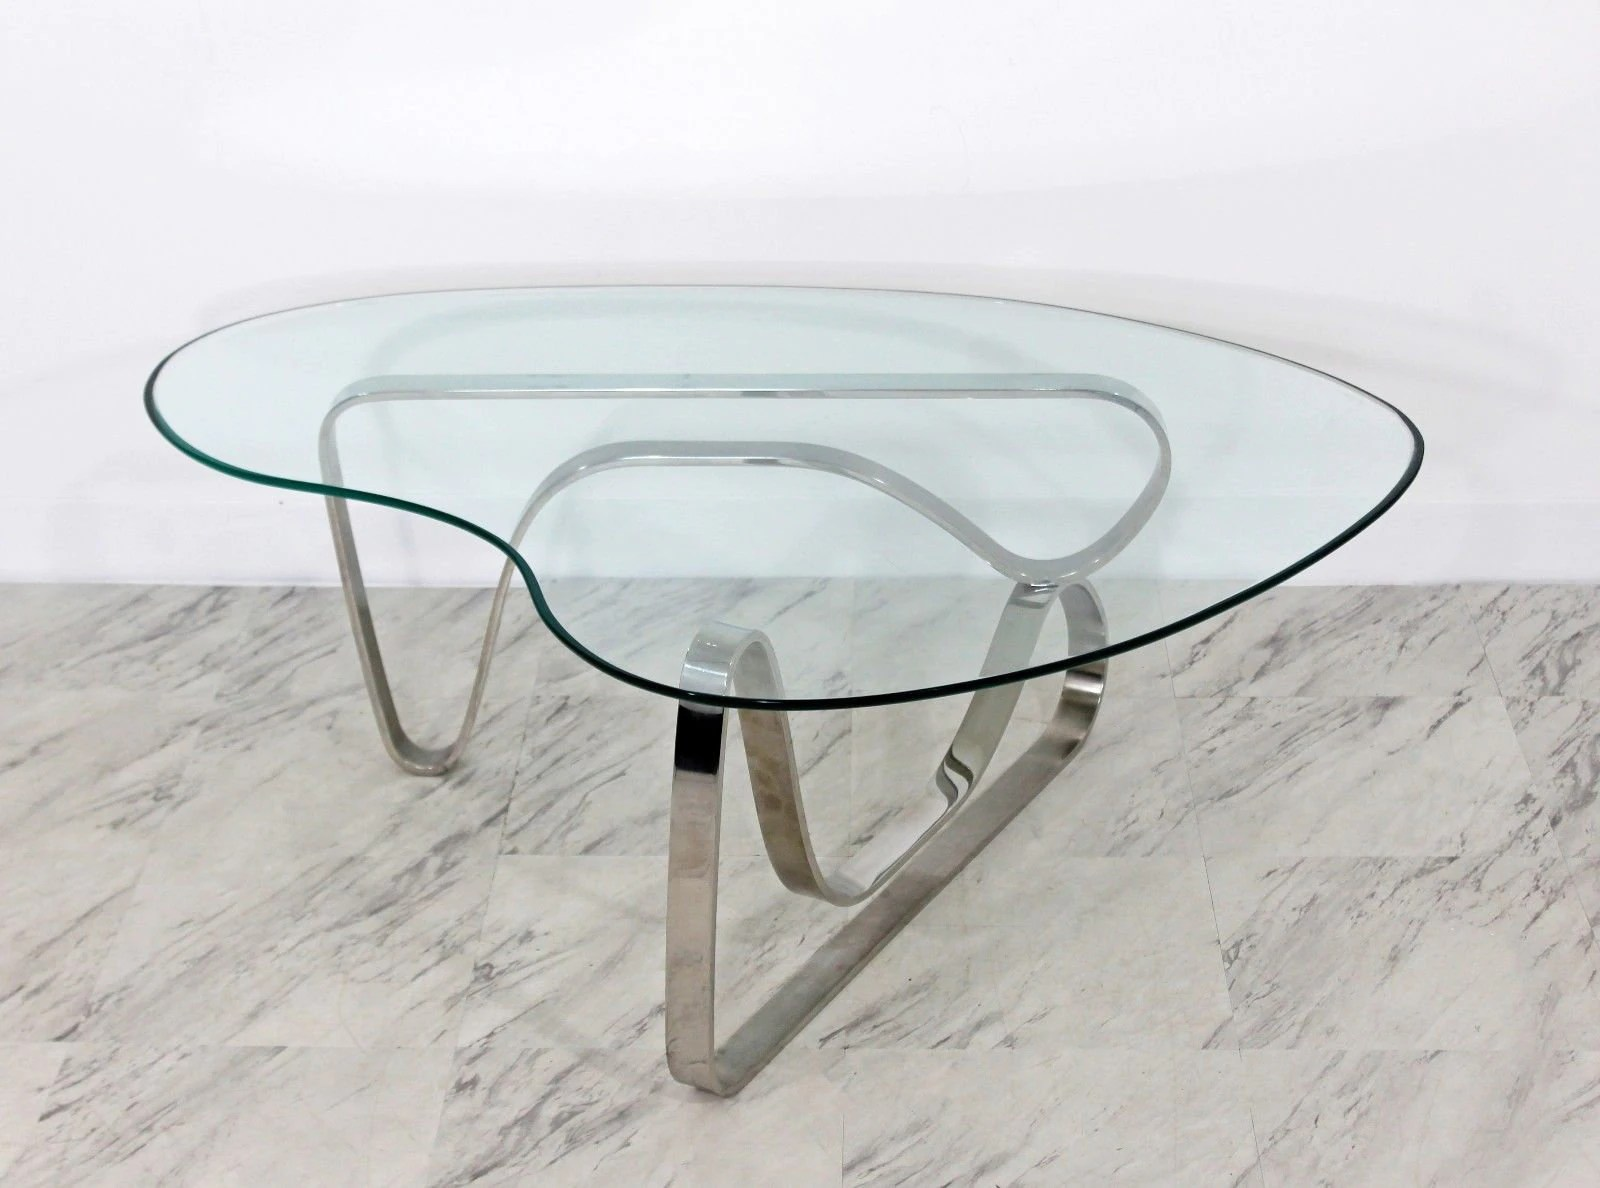 Mid Century Modern Sculptural Chrome Kidney Glass Coffee Table Pace Era 1970s